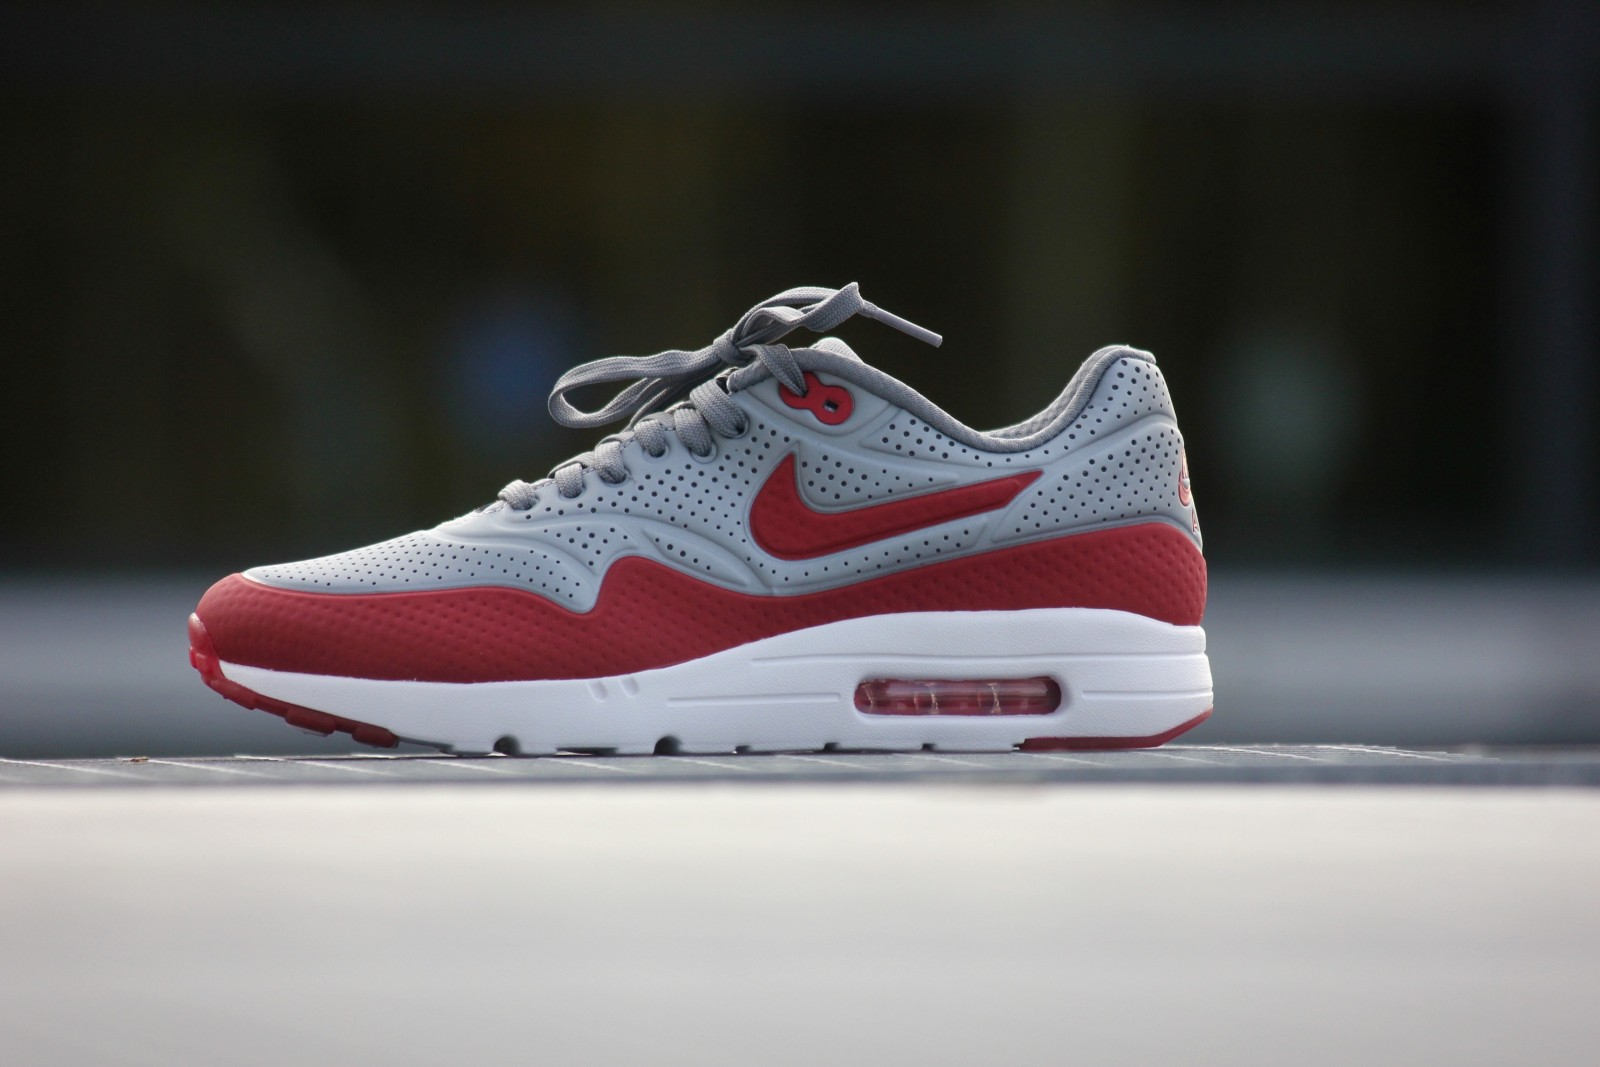 new arrival 05008 5b473 Nike Air Max 1 Ultra Moire Metallic Cool Grey Gym Red